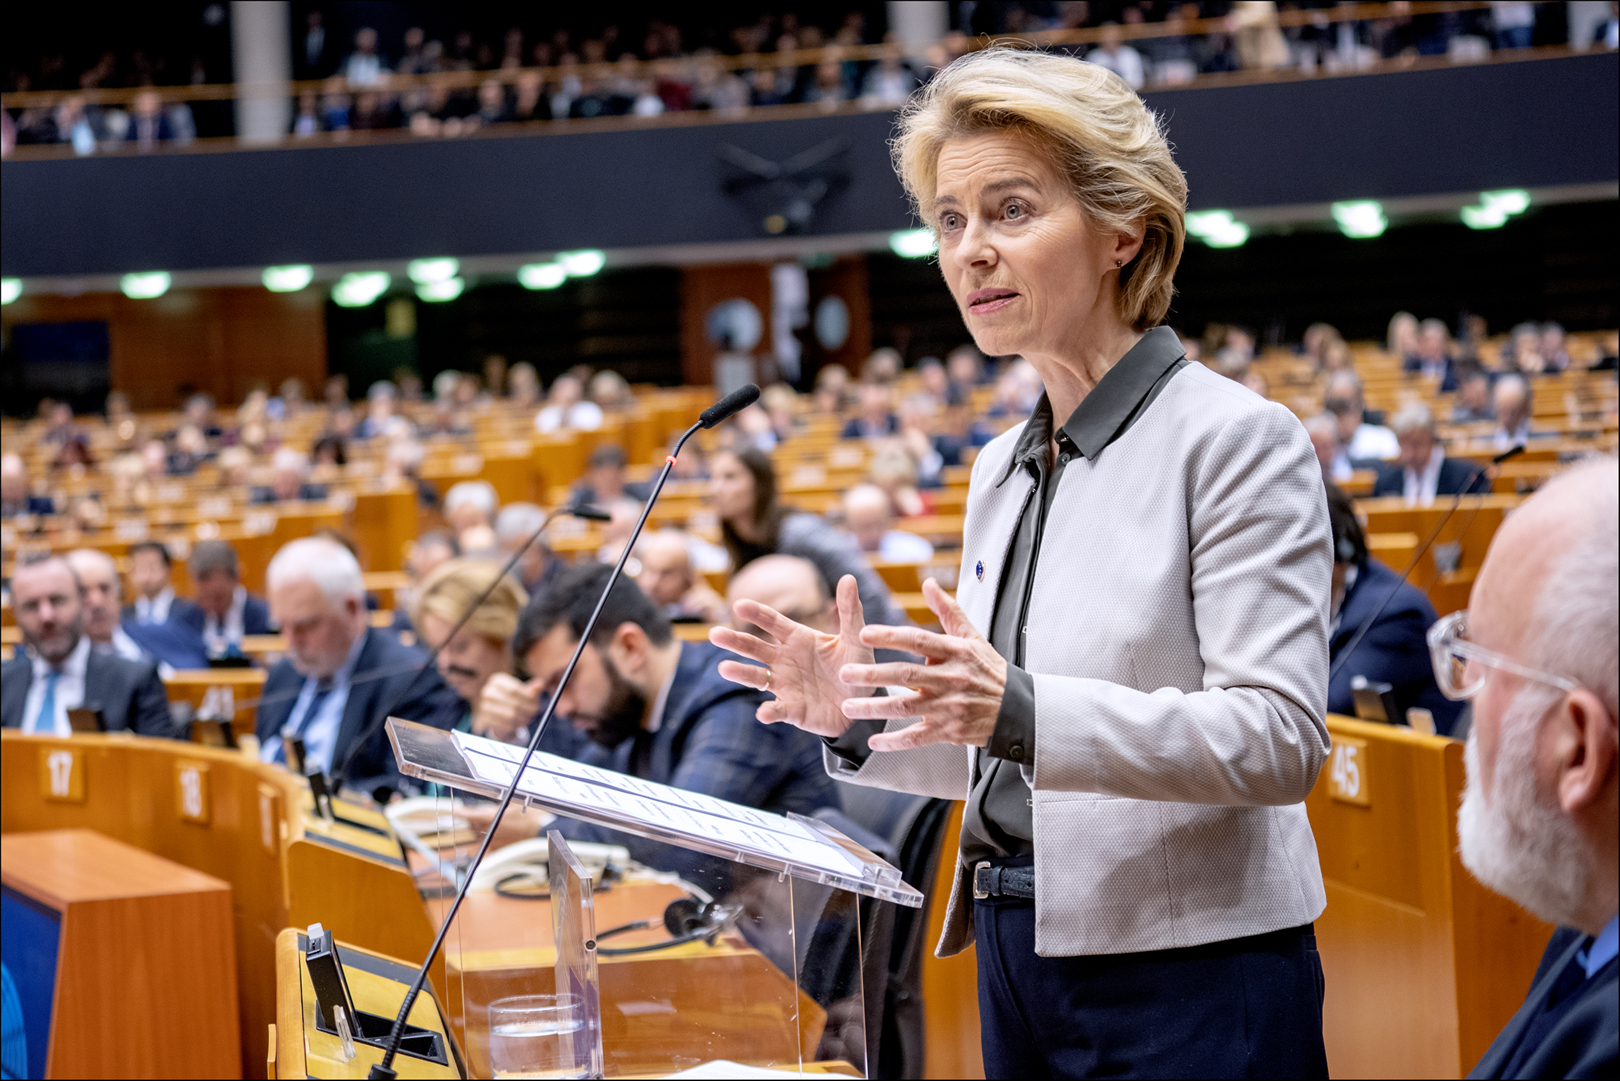 European Commission President Ursula von der Leyen debating the Green Deal